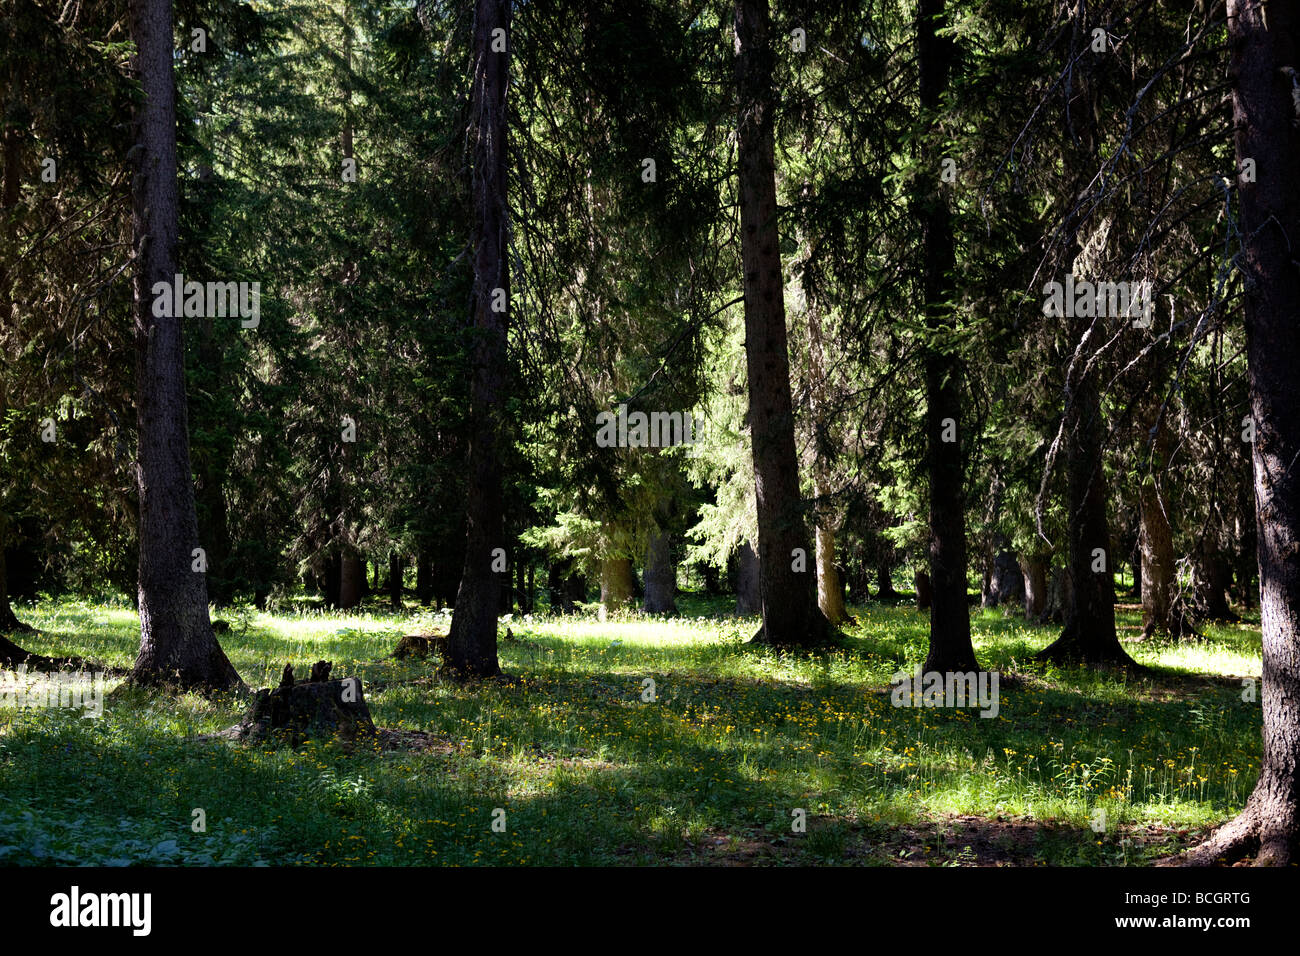 Alpine forest with larix trees in Val Veny, Monte Biaco, Courmayeur, Italy - Stock Image